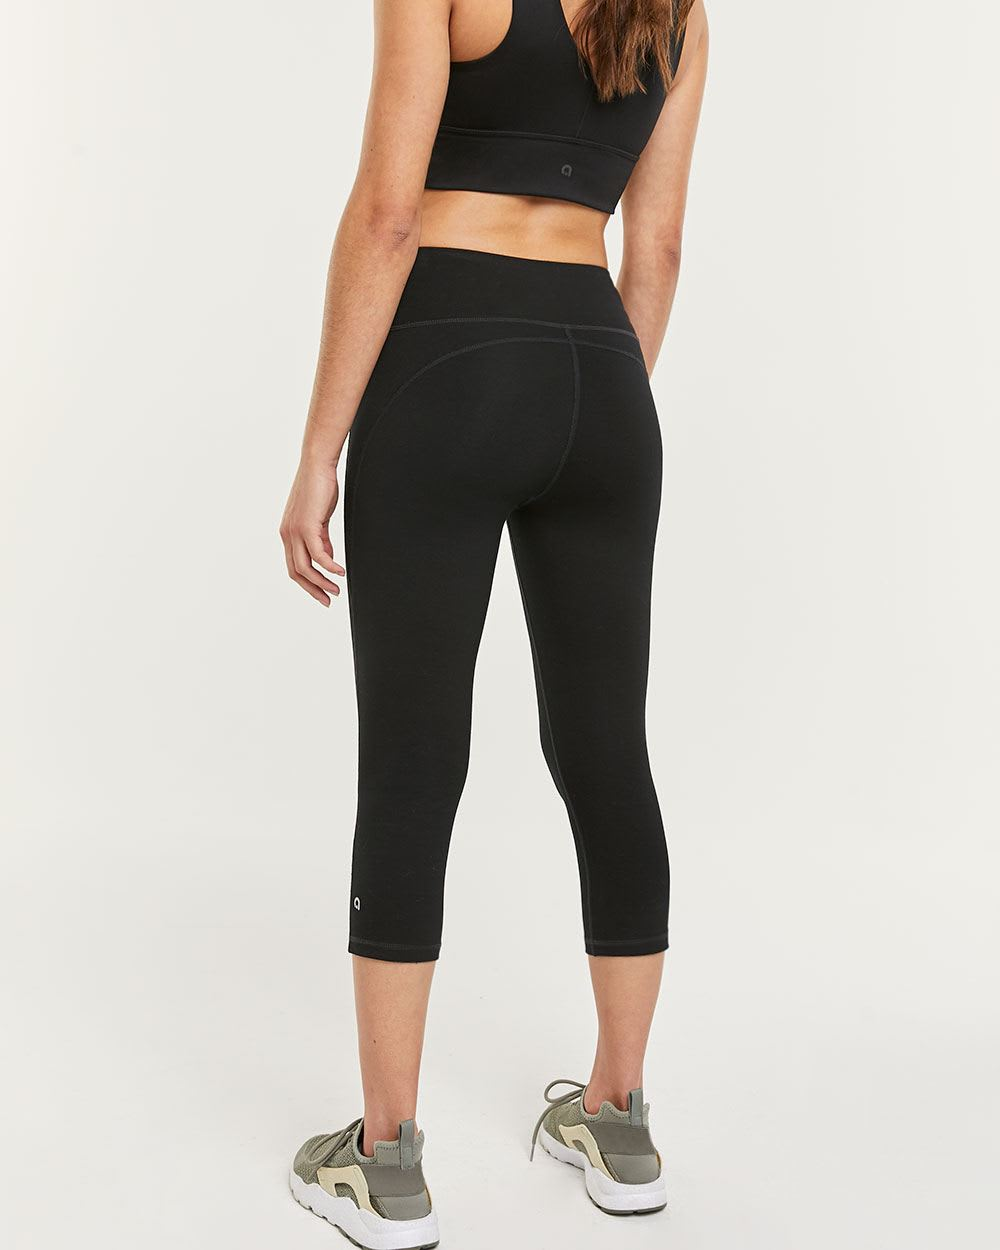 Black Capri Leggings Sculptor Hyba